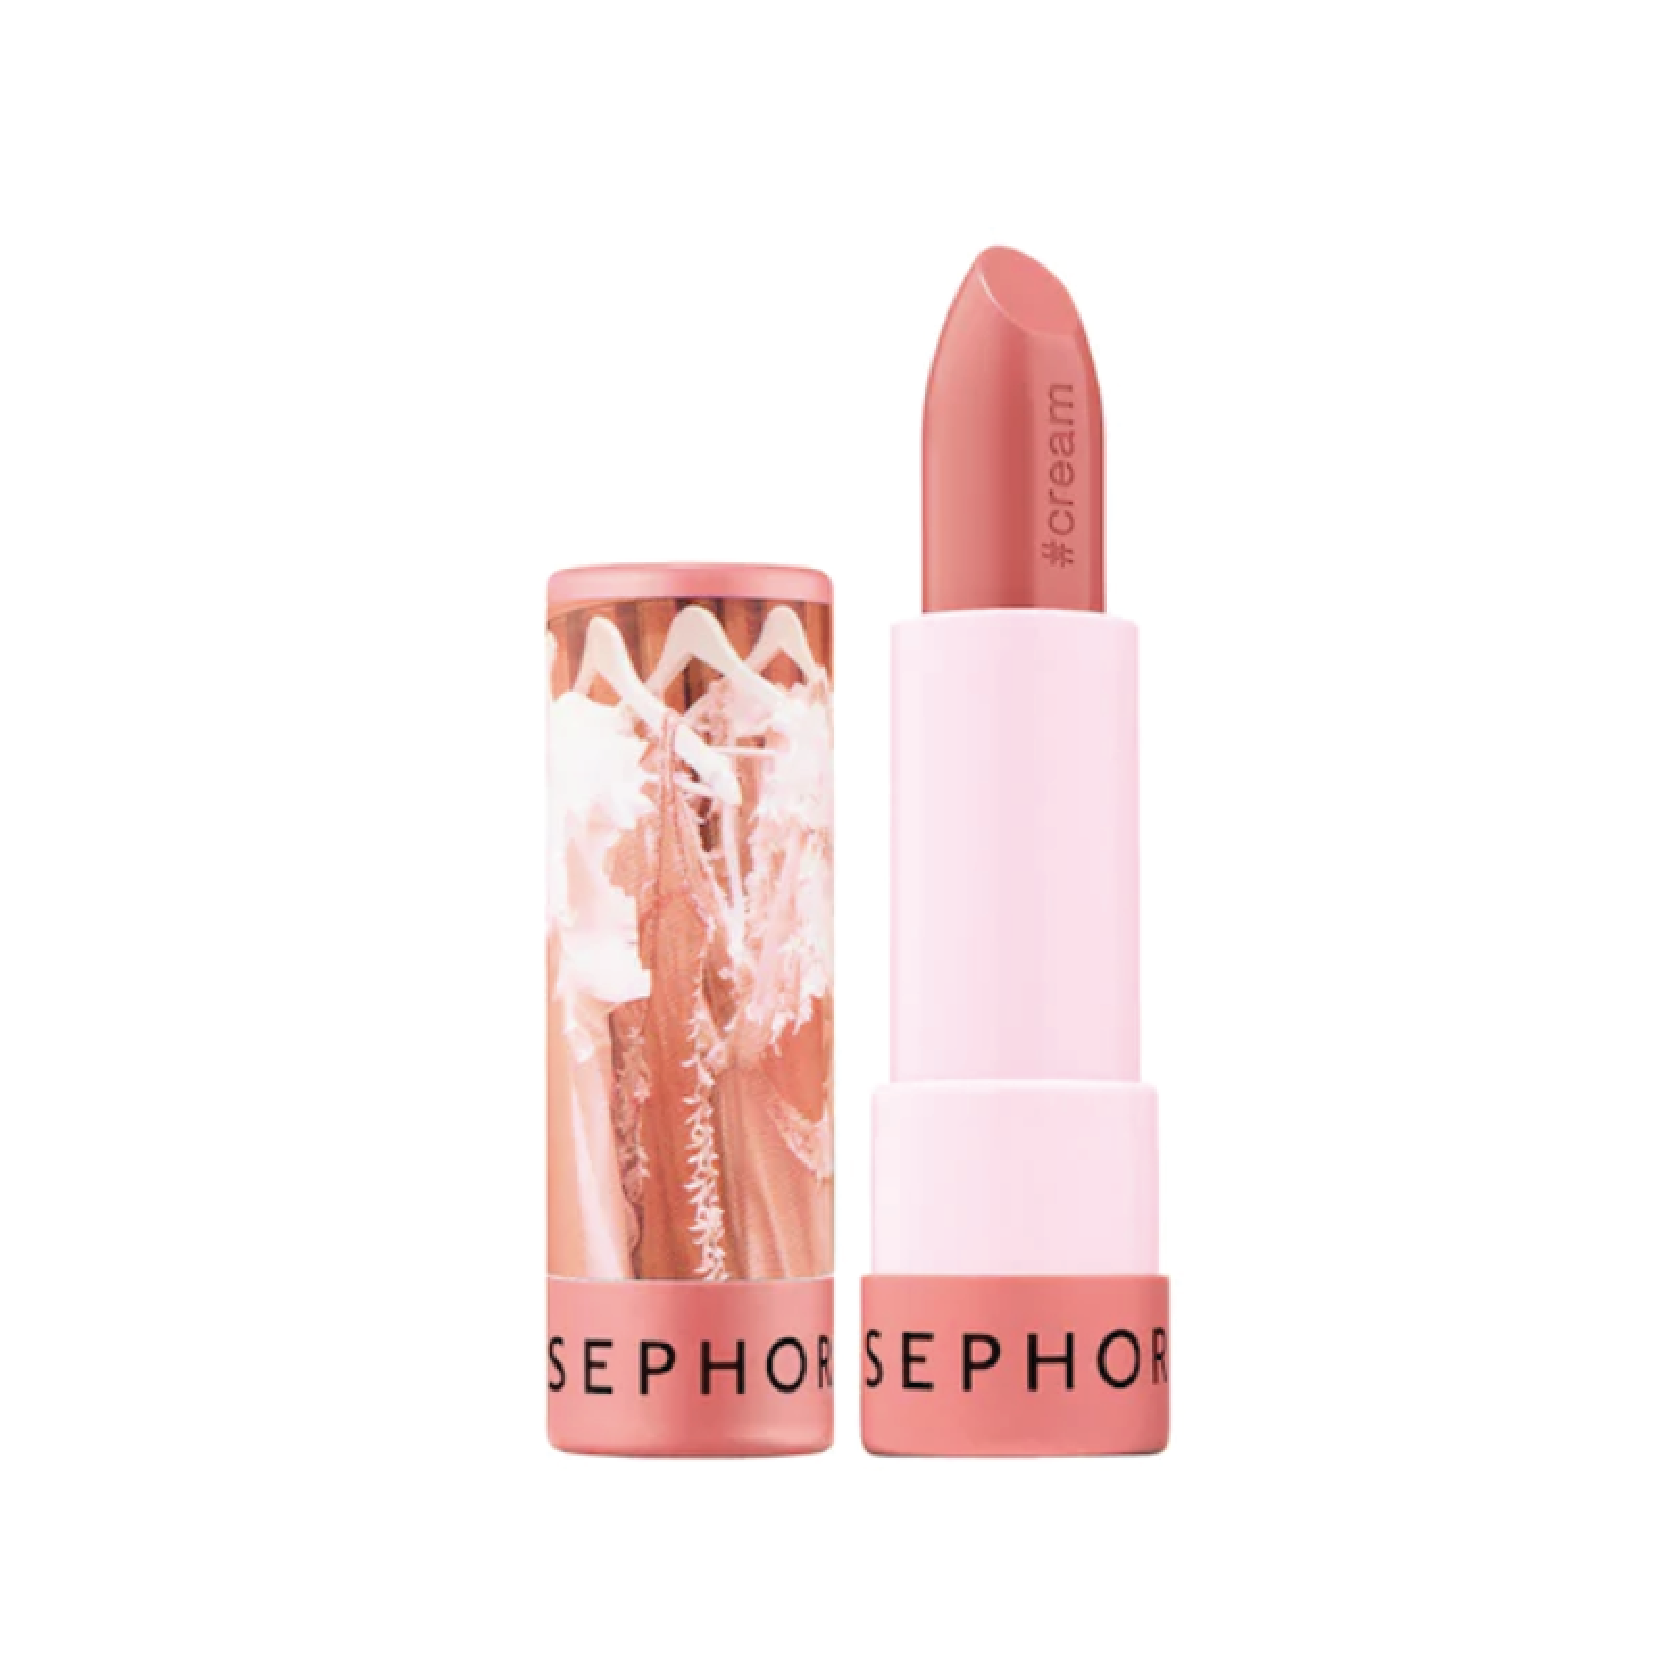 Sephora Collection #Lipstories Lipstick - $8 at SephoraThis is honestly the best cheap lipstick bullet. They last so long and have amazing pigment. I can't think of anything I'd love to find more in my stocking than a few of these!